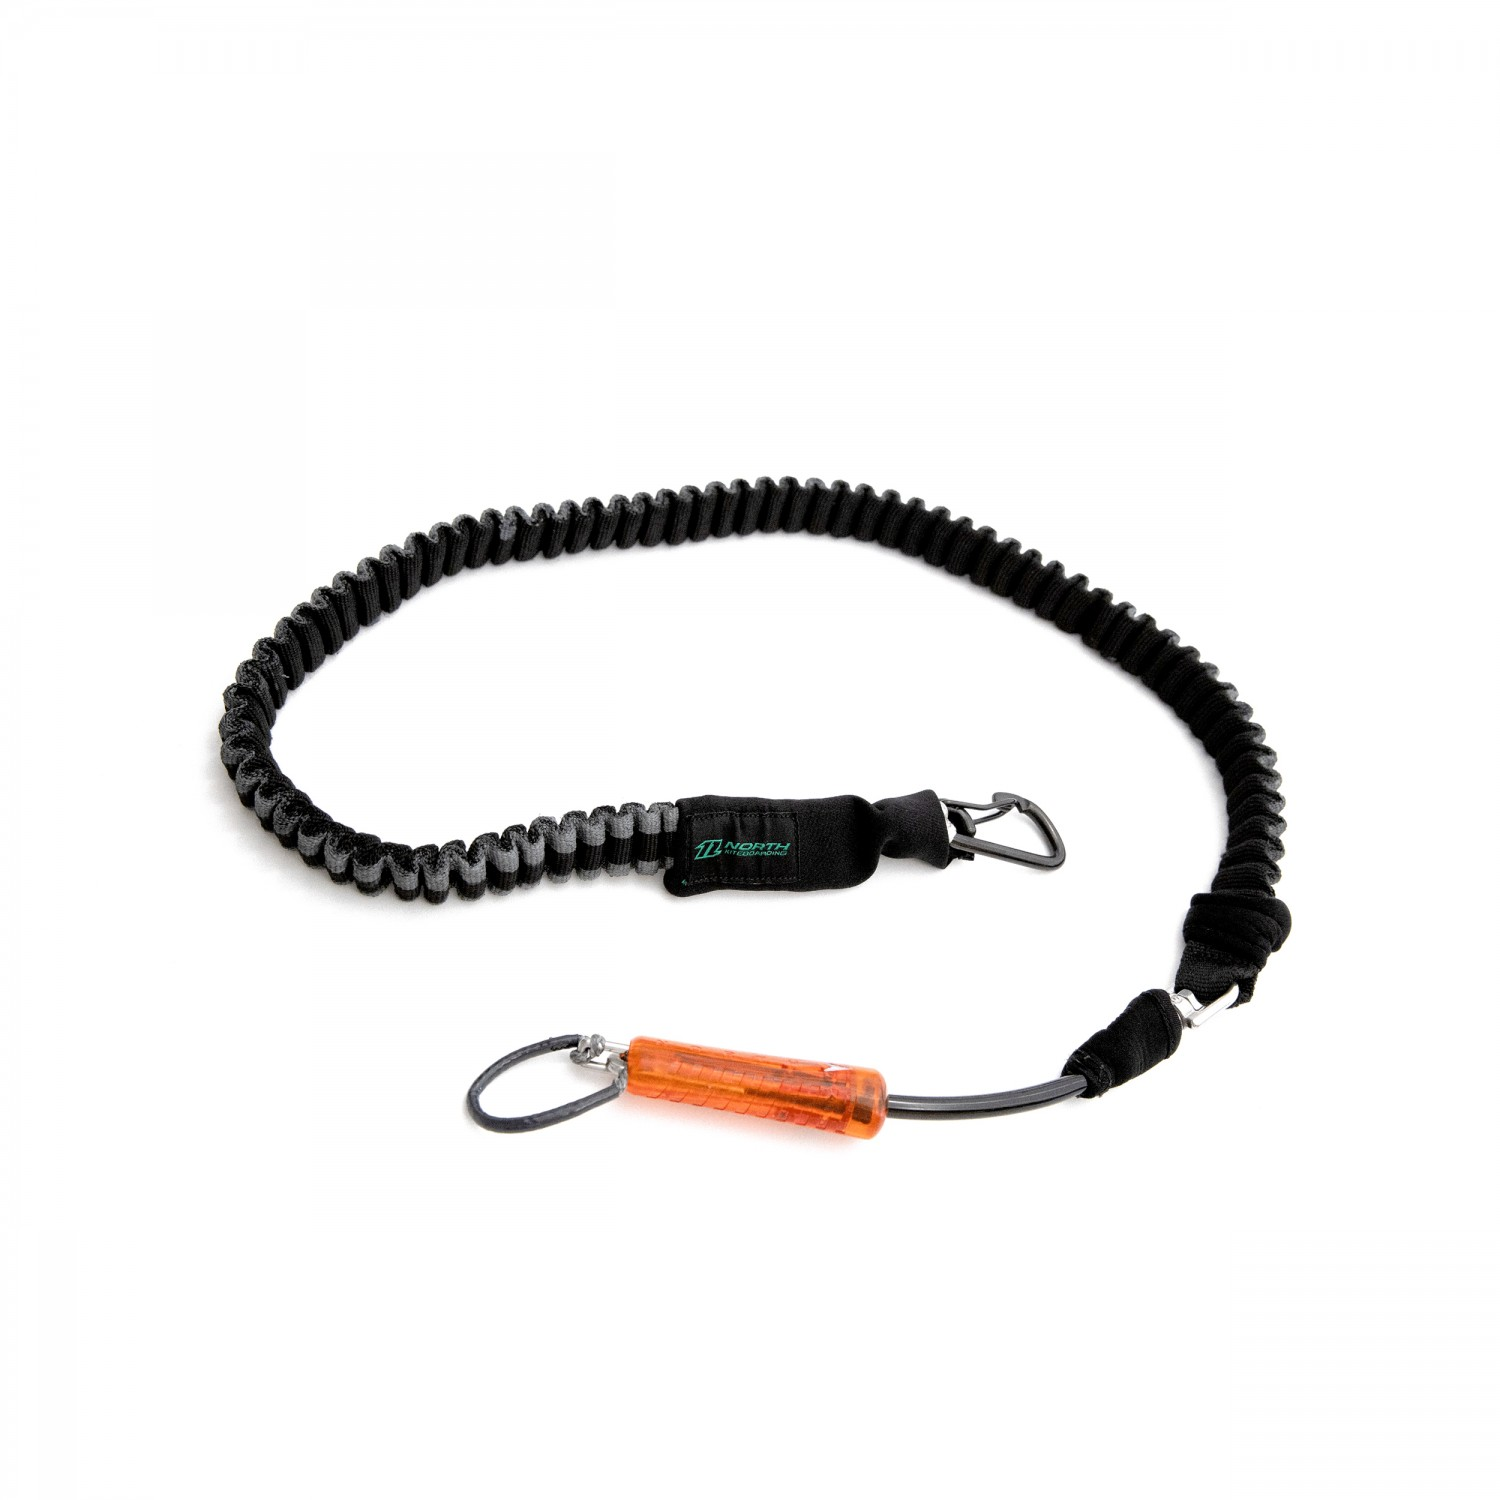 north handlepass safety leash